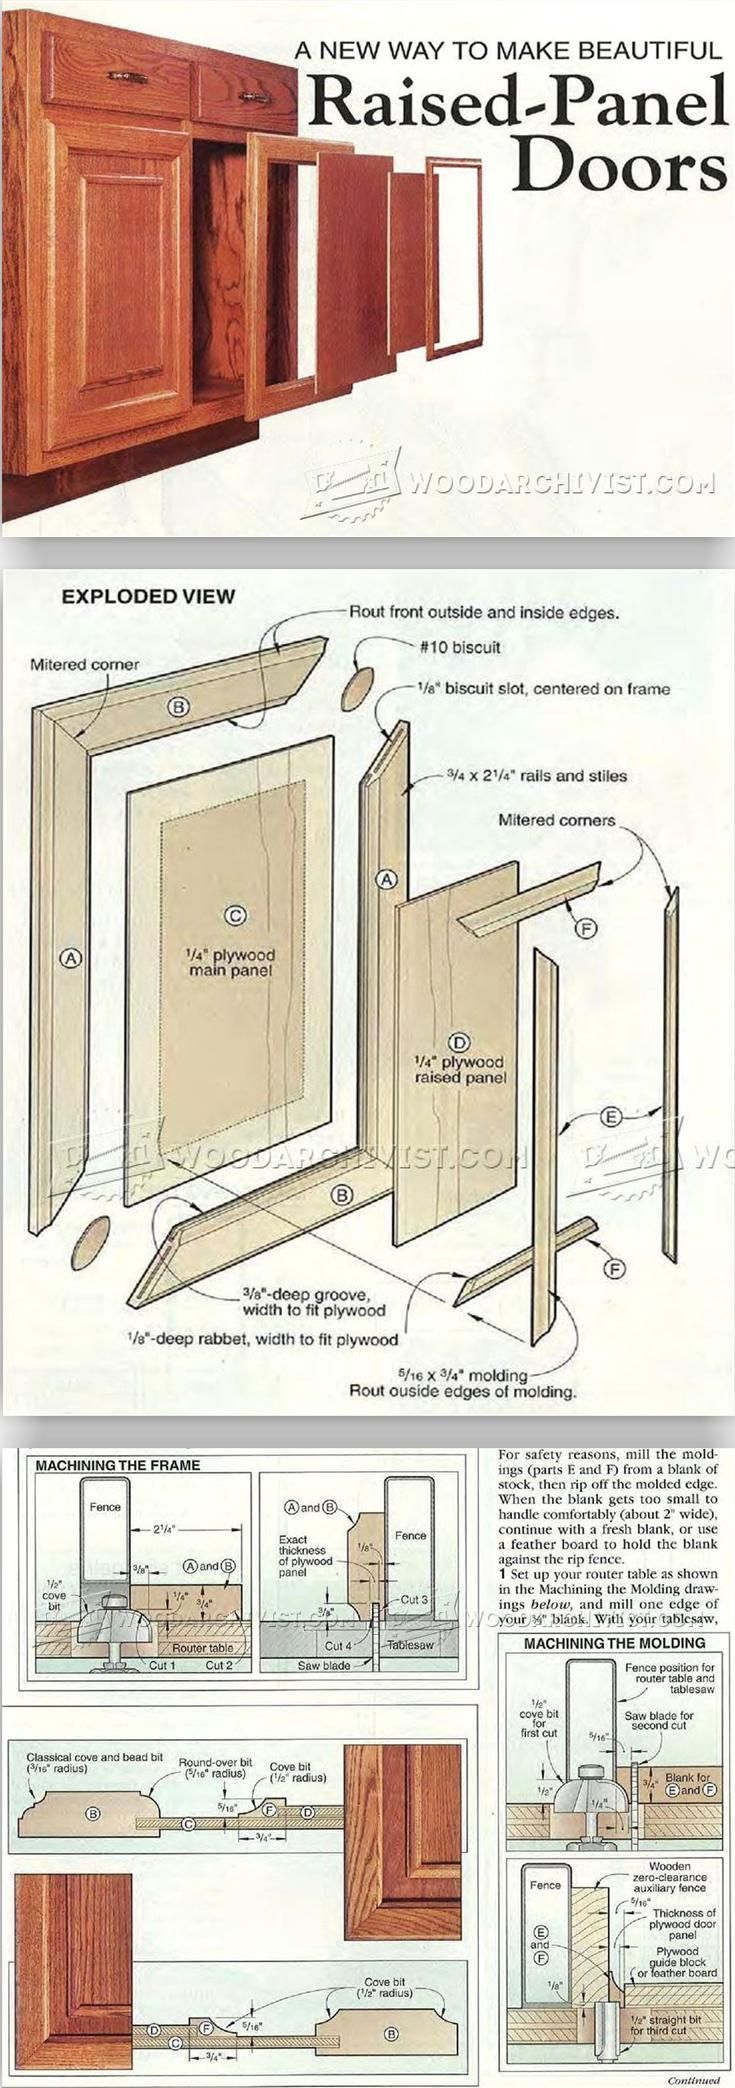 Making Raised Panel Doors - Cabinet Door Construction and Techniques